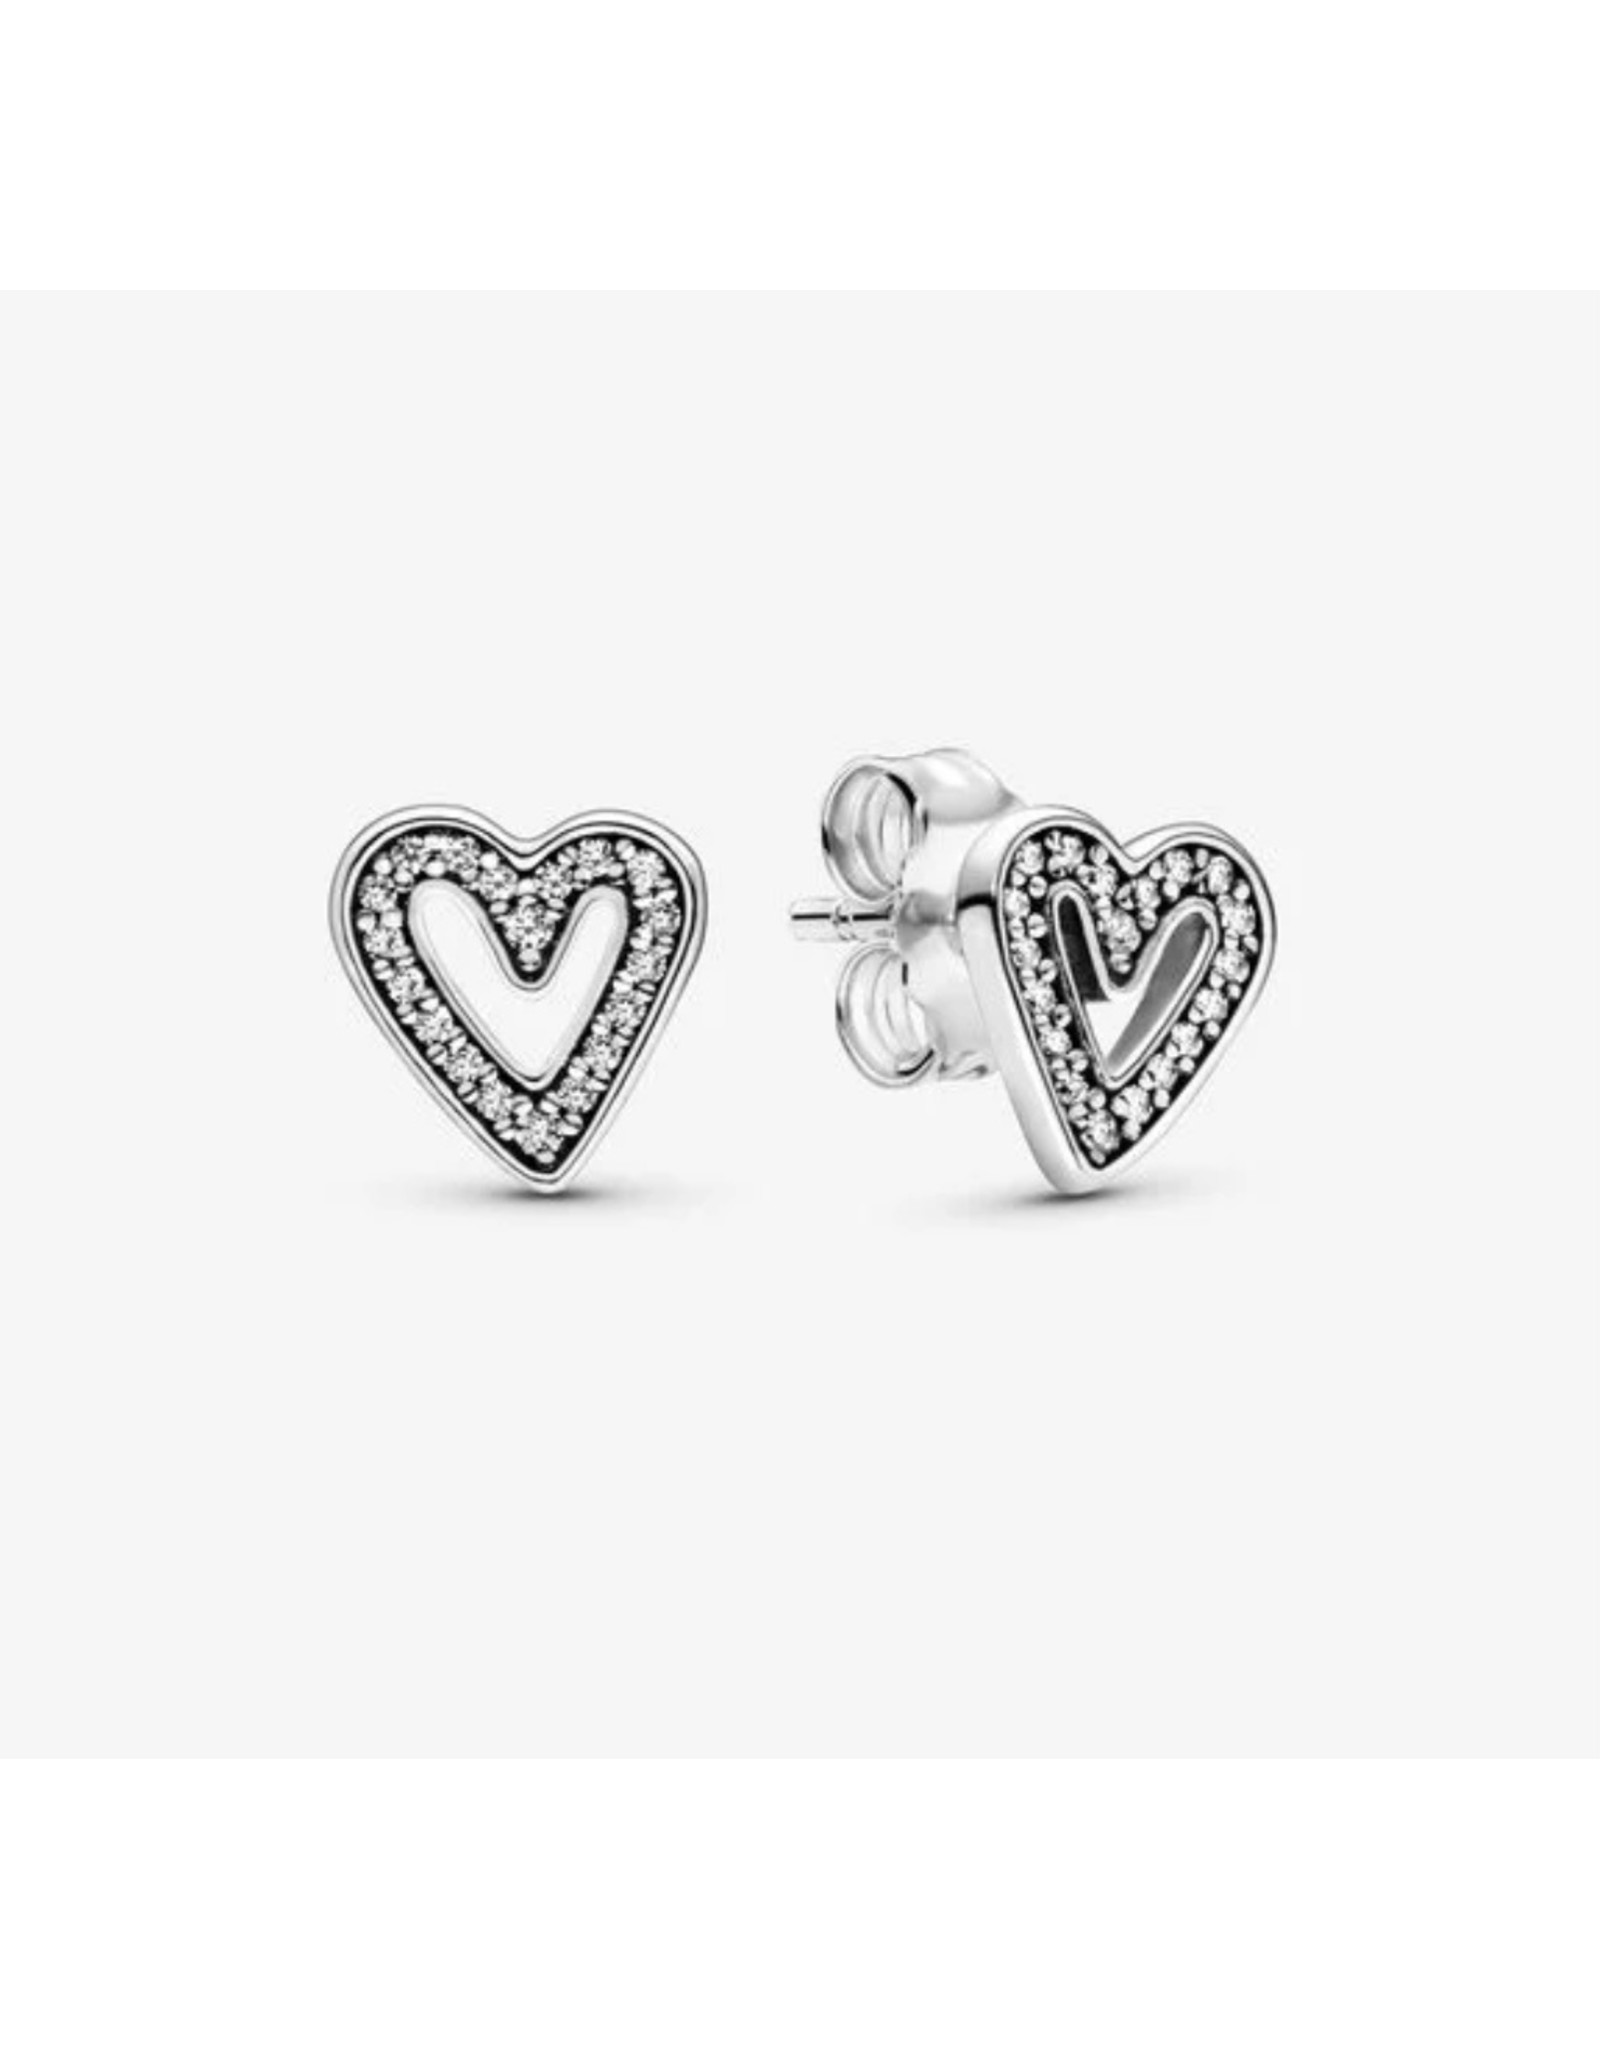 Pandora Pandora Earrings,298685C01,Heart Sterling Silver Stud Clear CZ